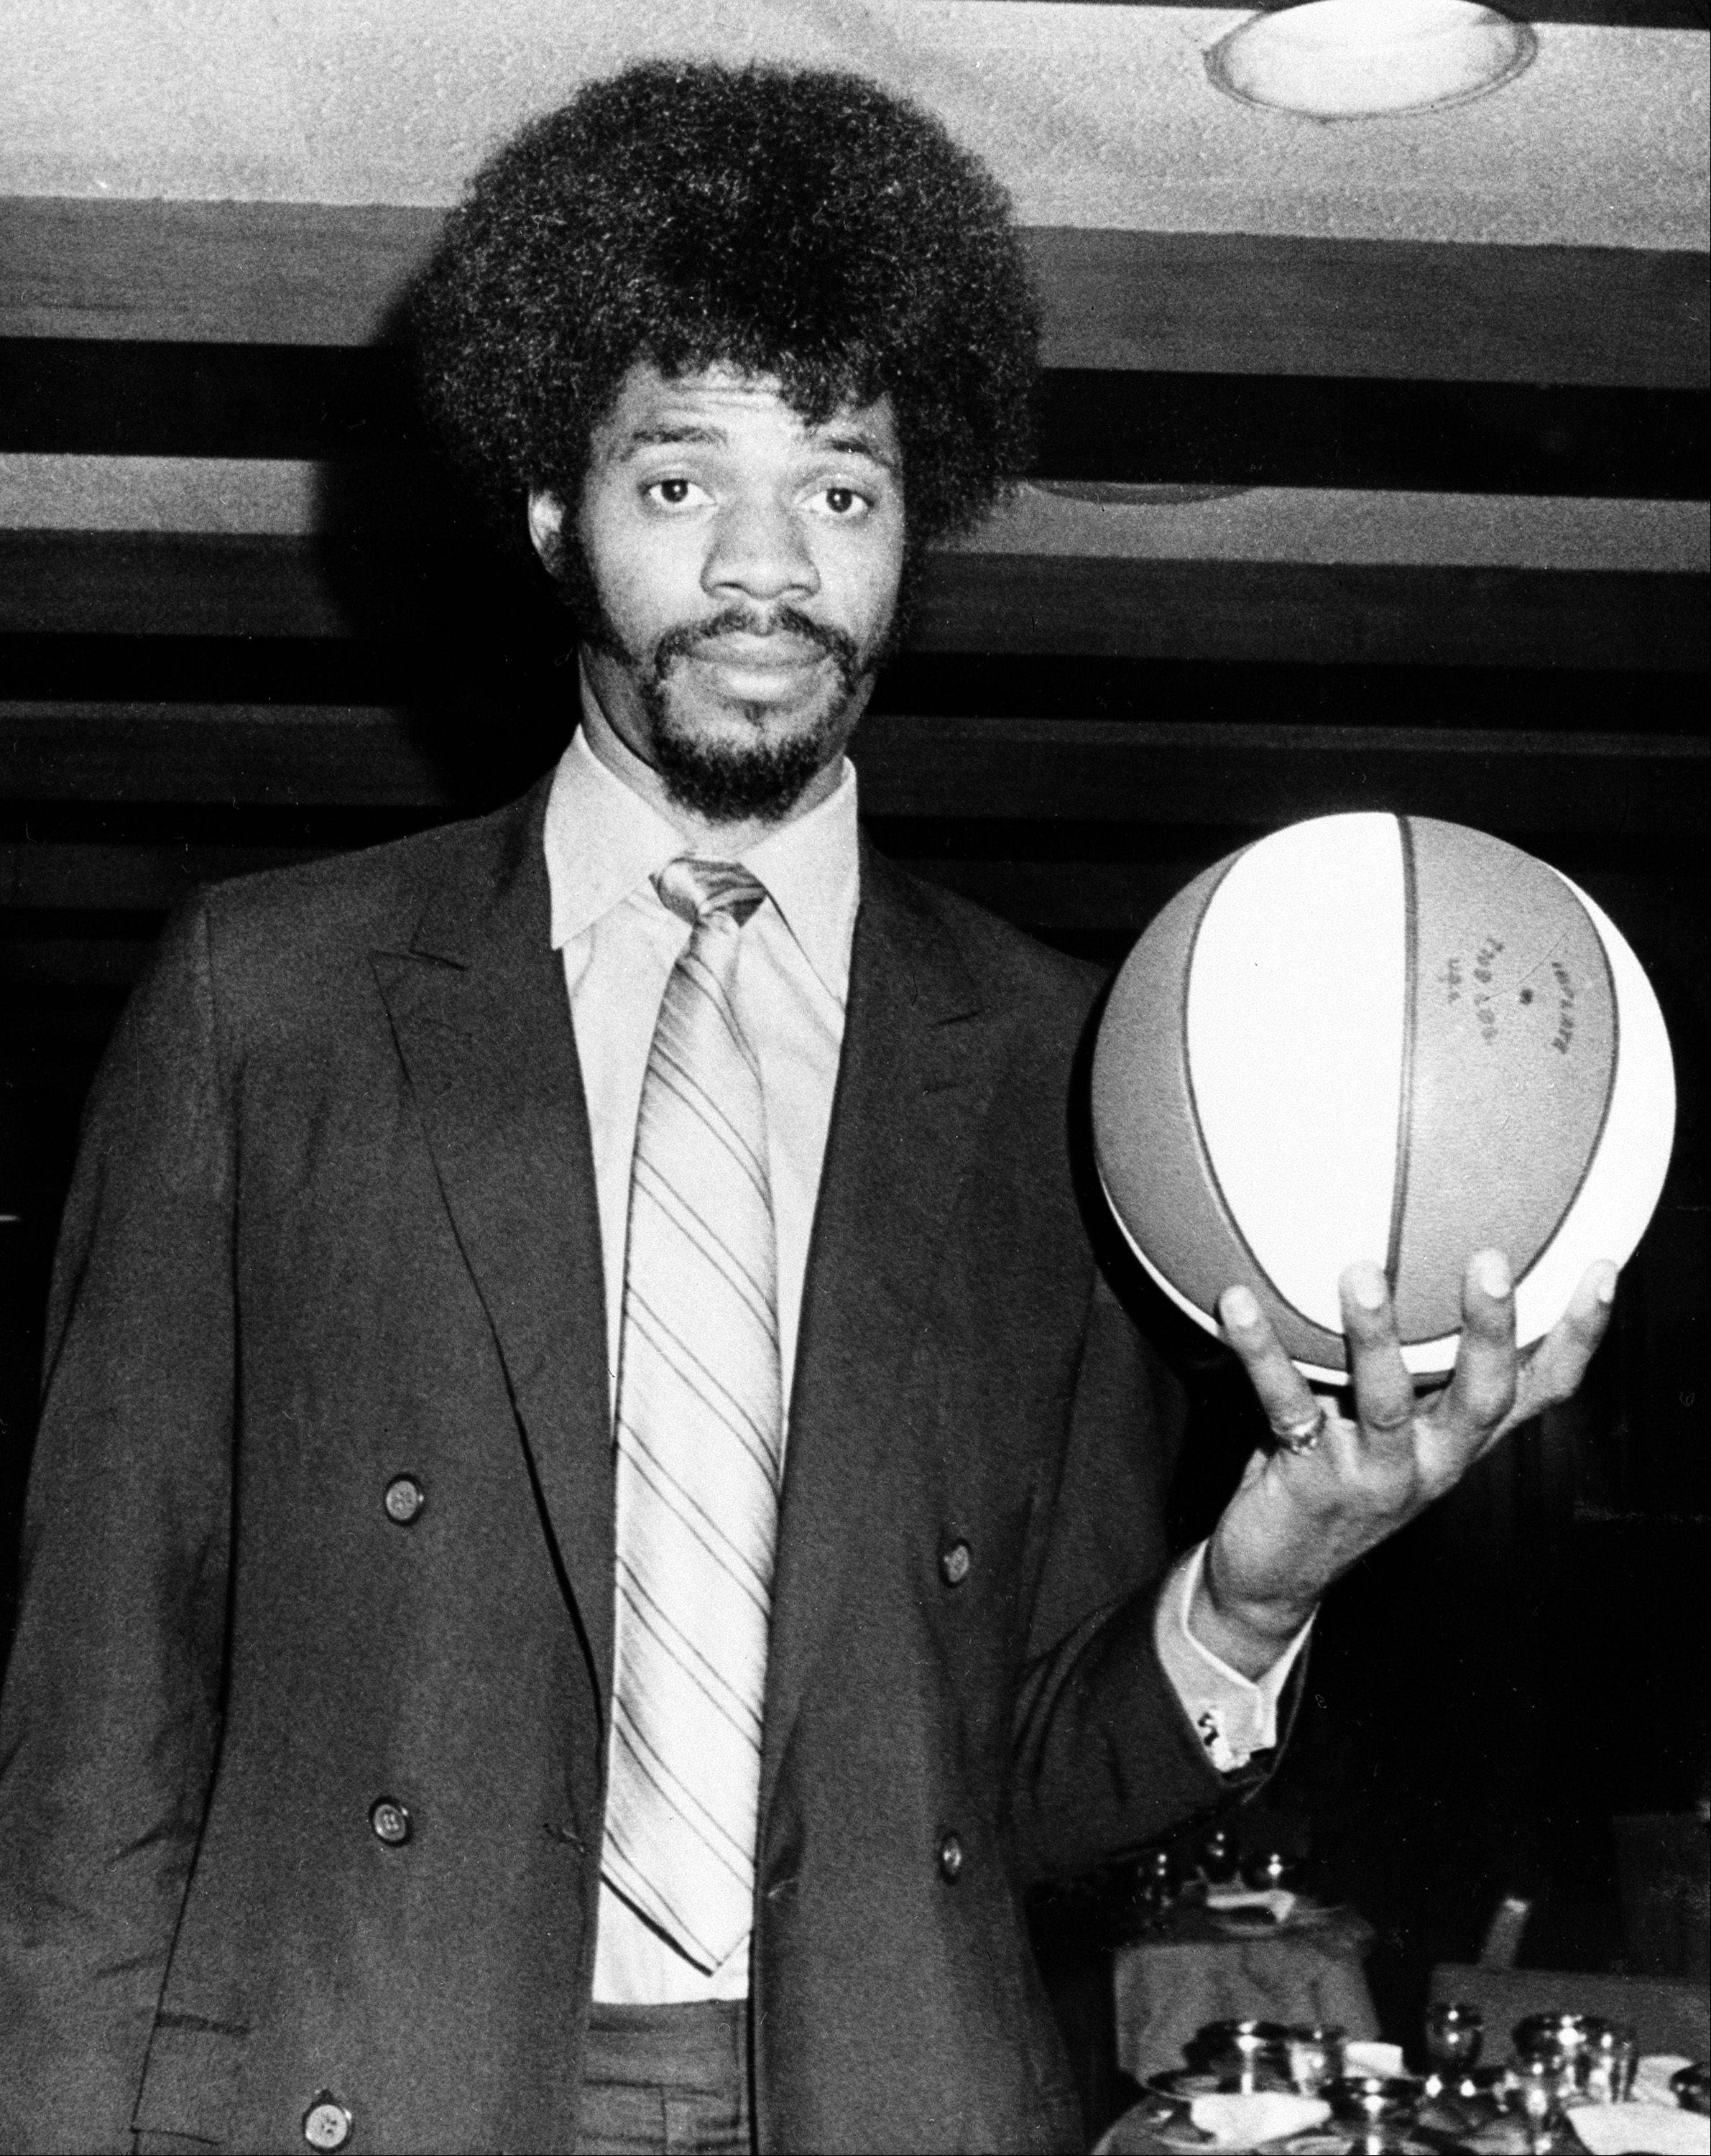 Artis Gilmore, 7-foot-2 player from Jacksonville University, is introduced to the press, on March 17, 1971, in New York, after he was signed by the Kentucky Colonels as their first round pick of the draft.